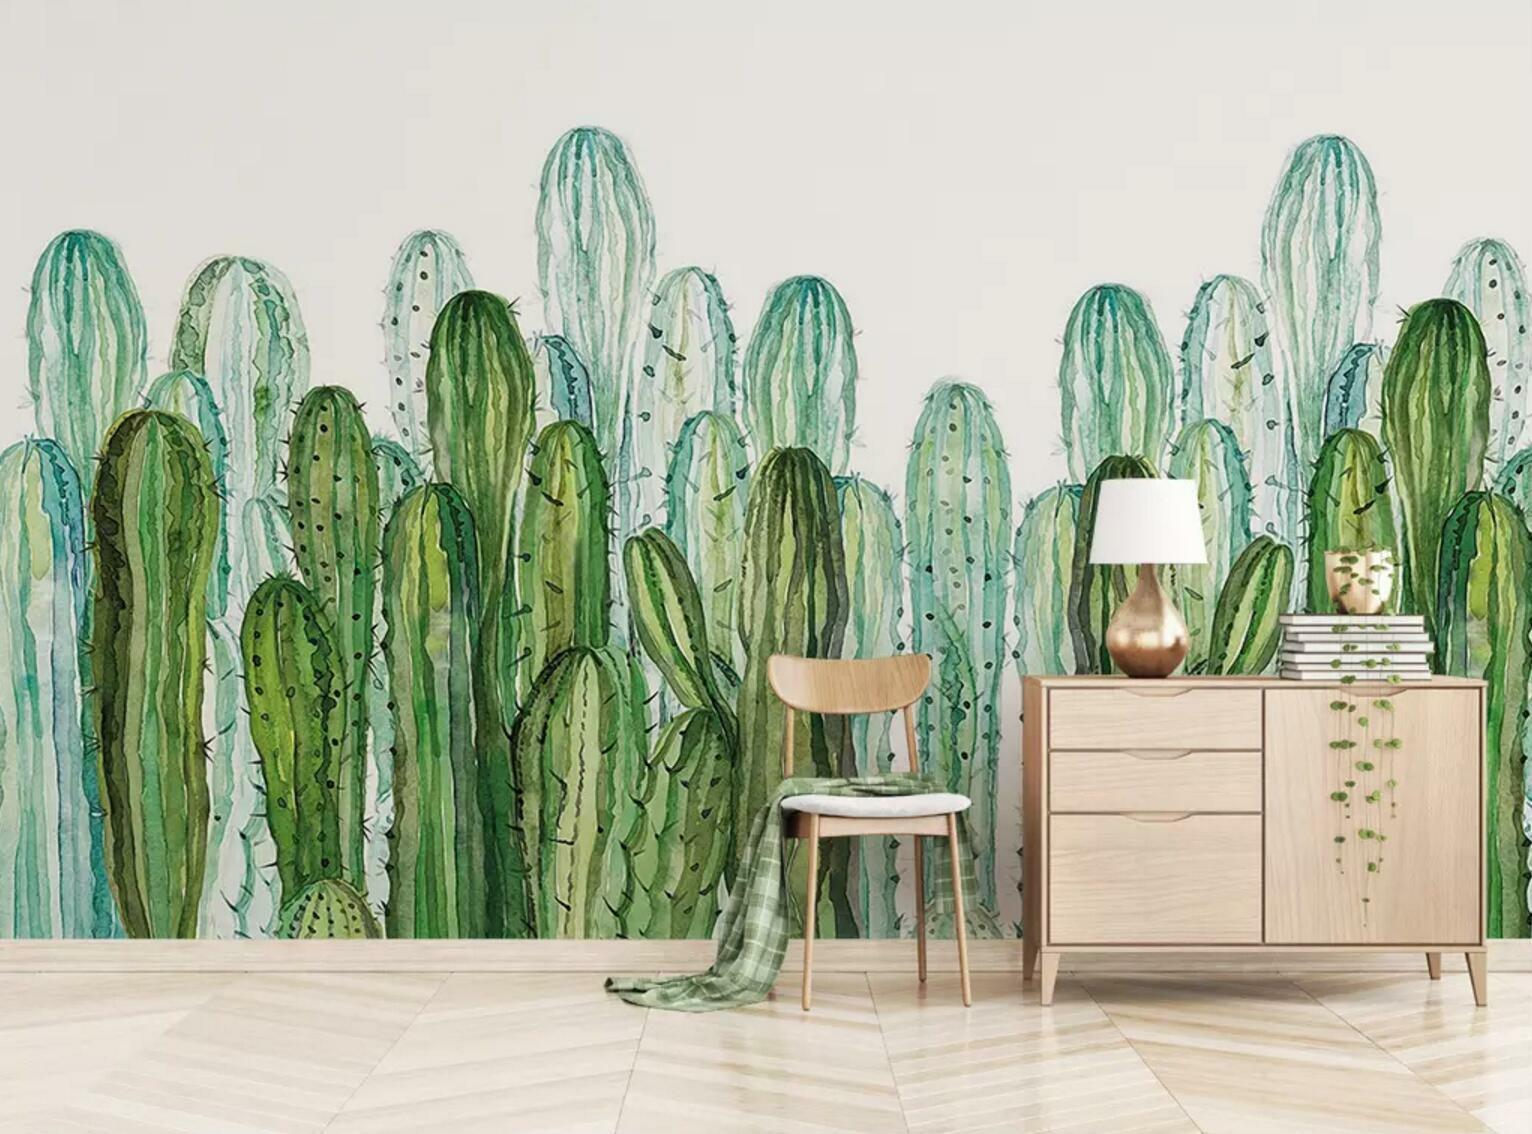 3D Green Cactus 7452 Wall Paper Exclusive MXY Wallpaper Mural Decal Indoor Wall